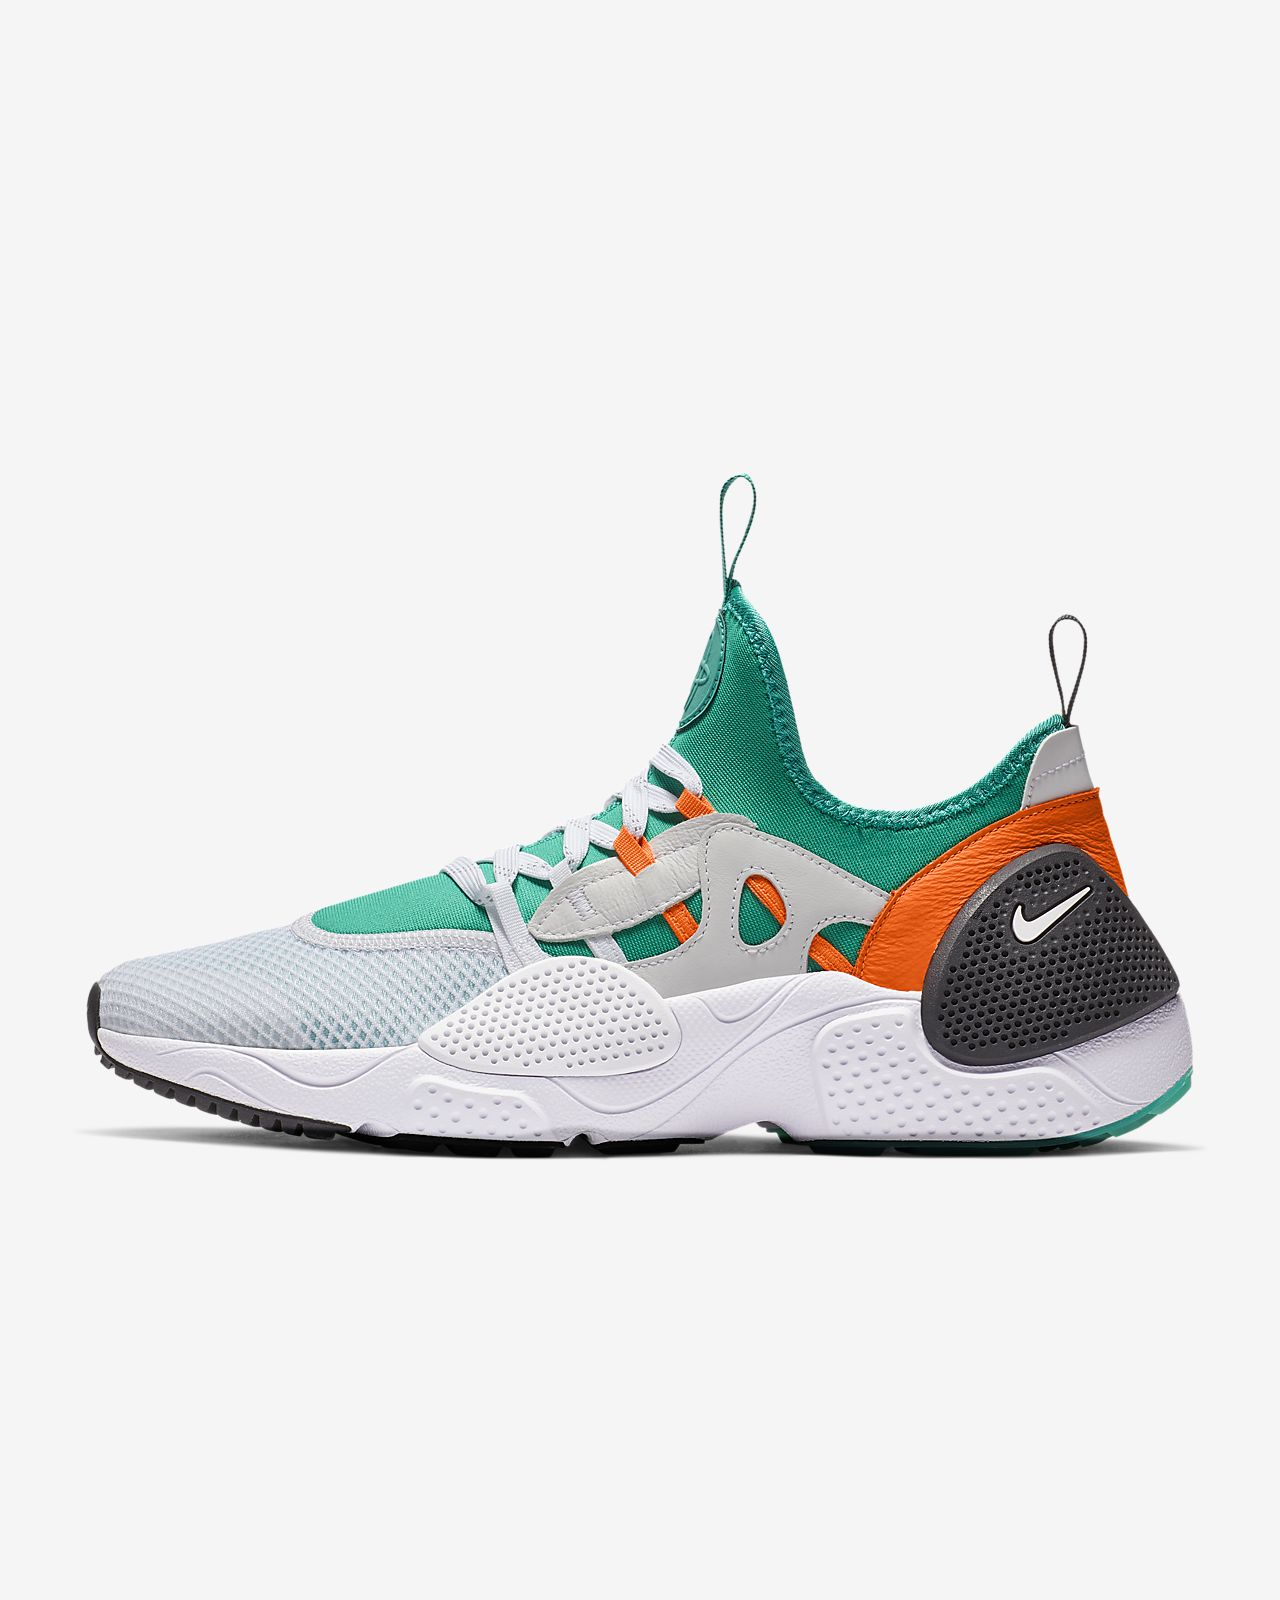 Nike Huarache EDGE TXT QS Men\u0027s Shoe